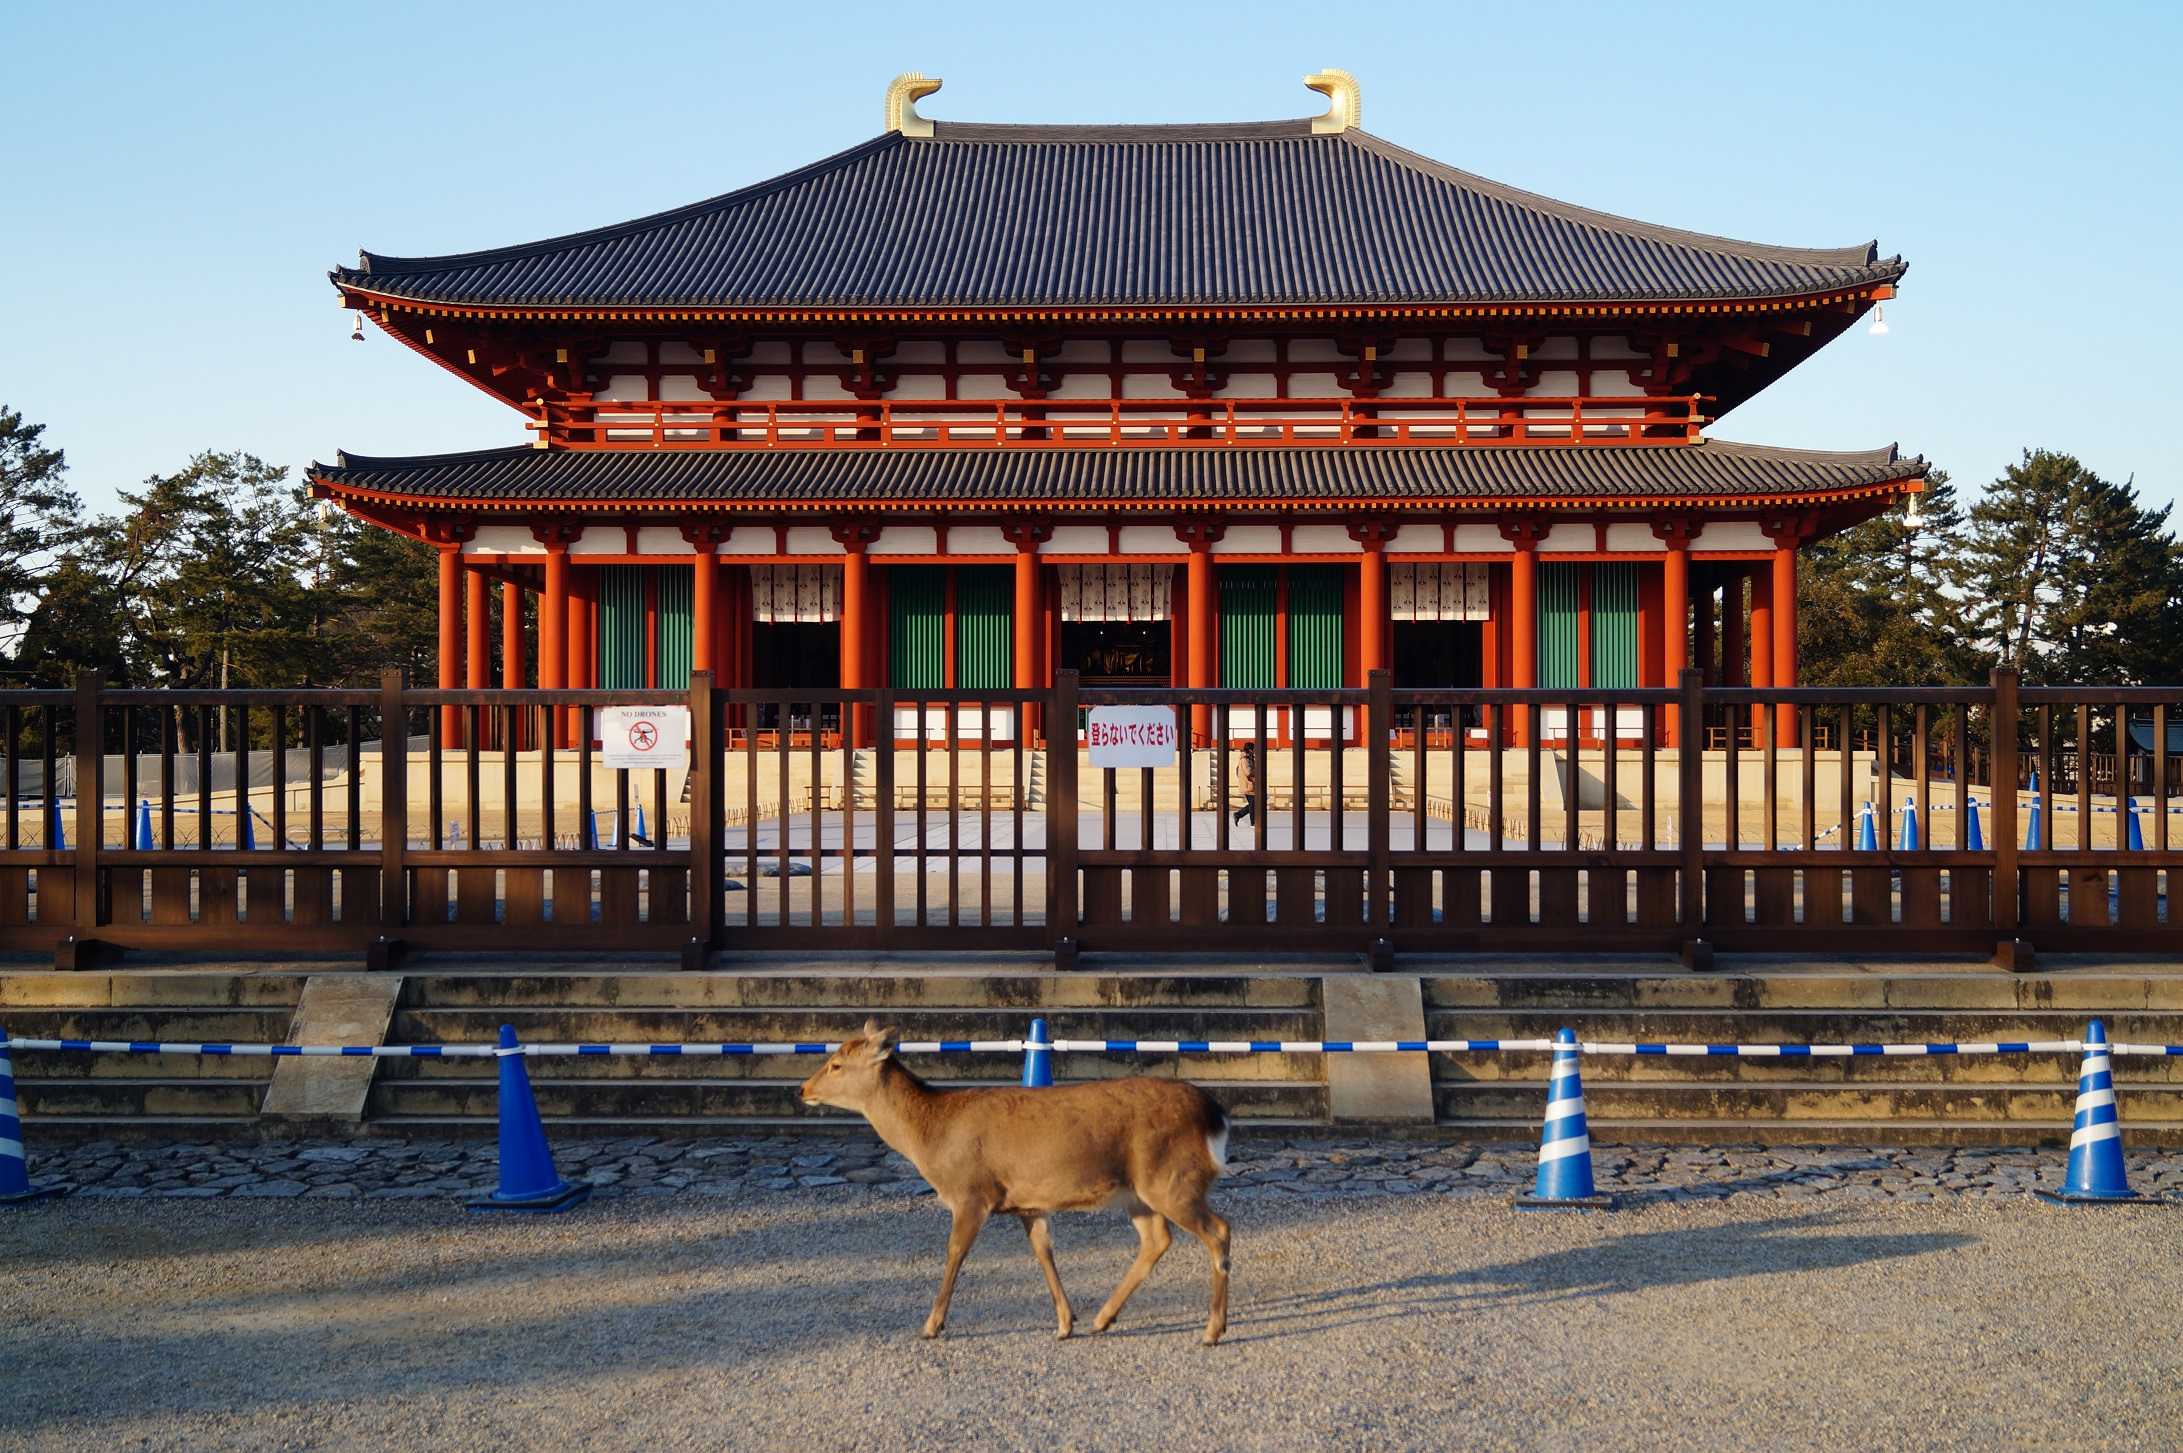 Nara Templo Parque de Nara - Nara Park and the Sacred Deer of Japan